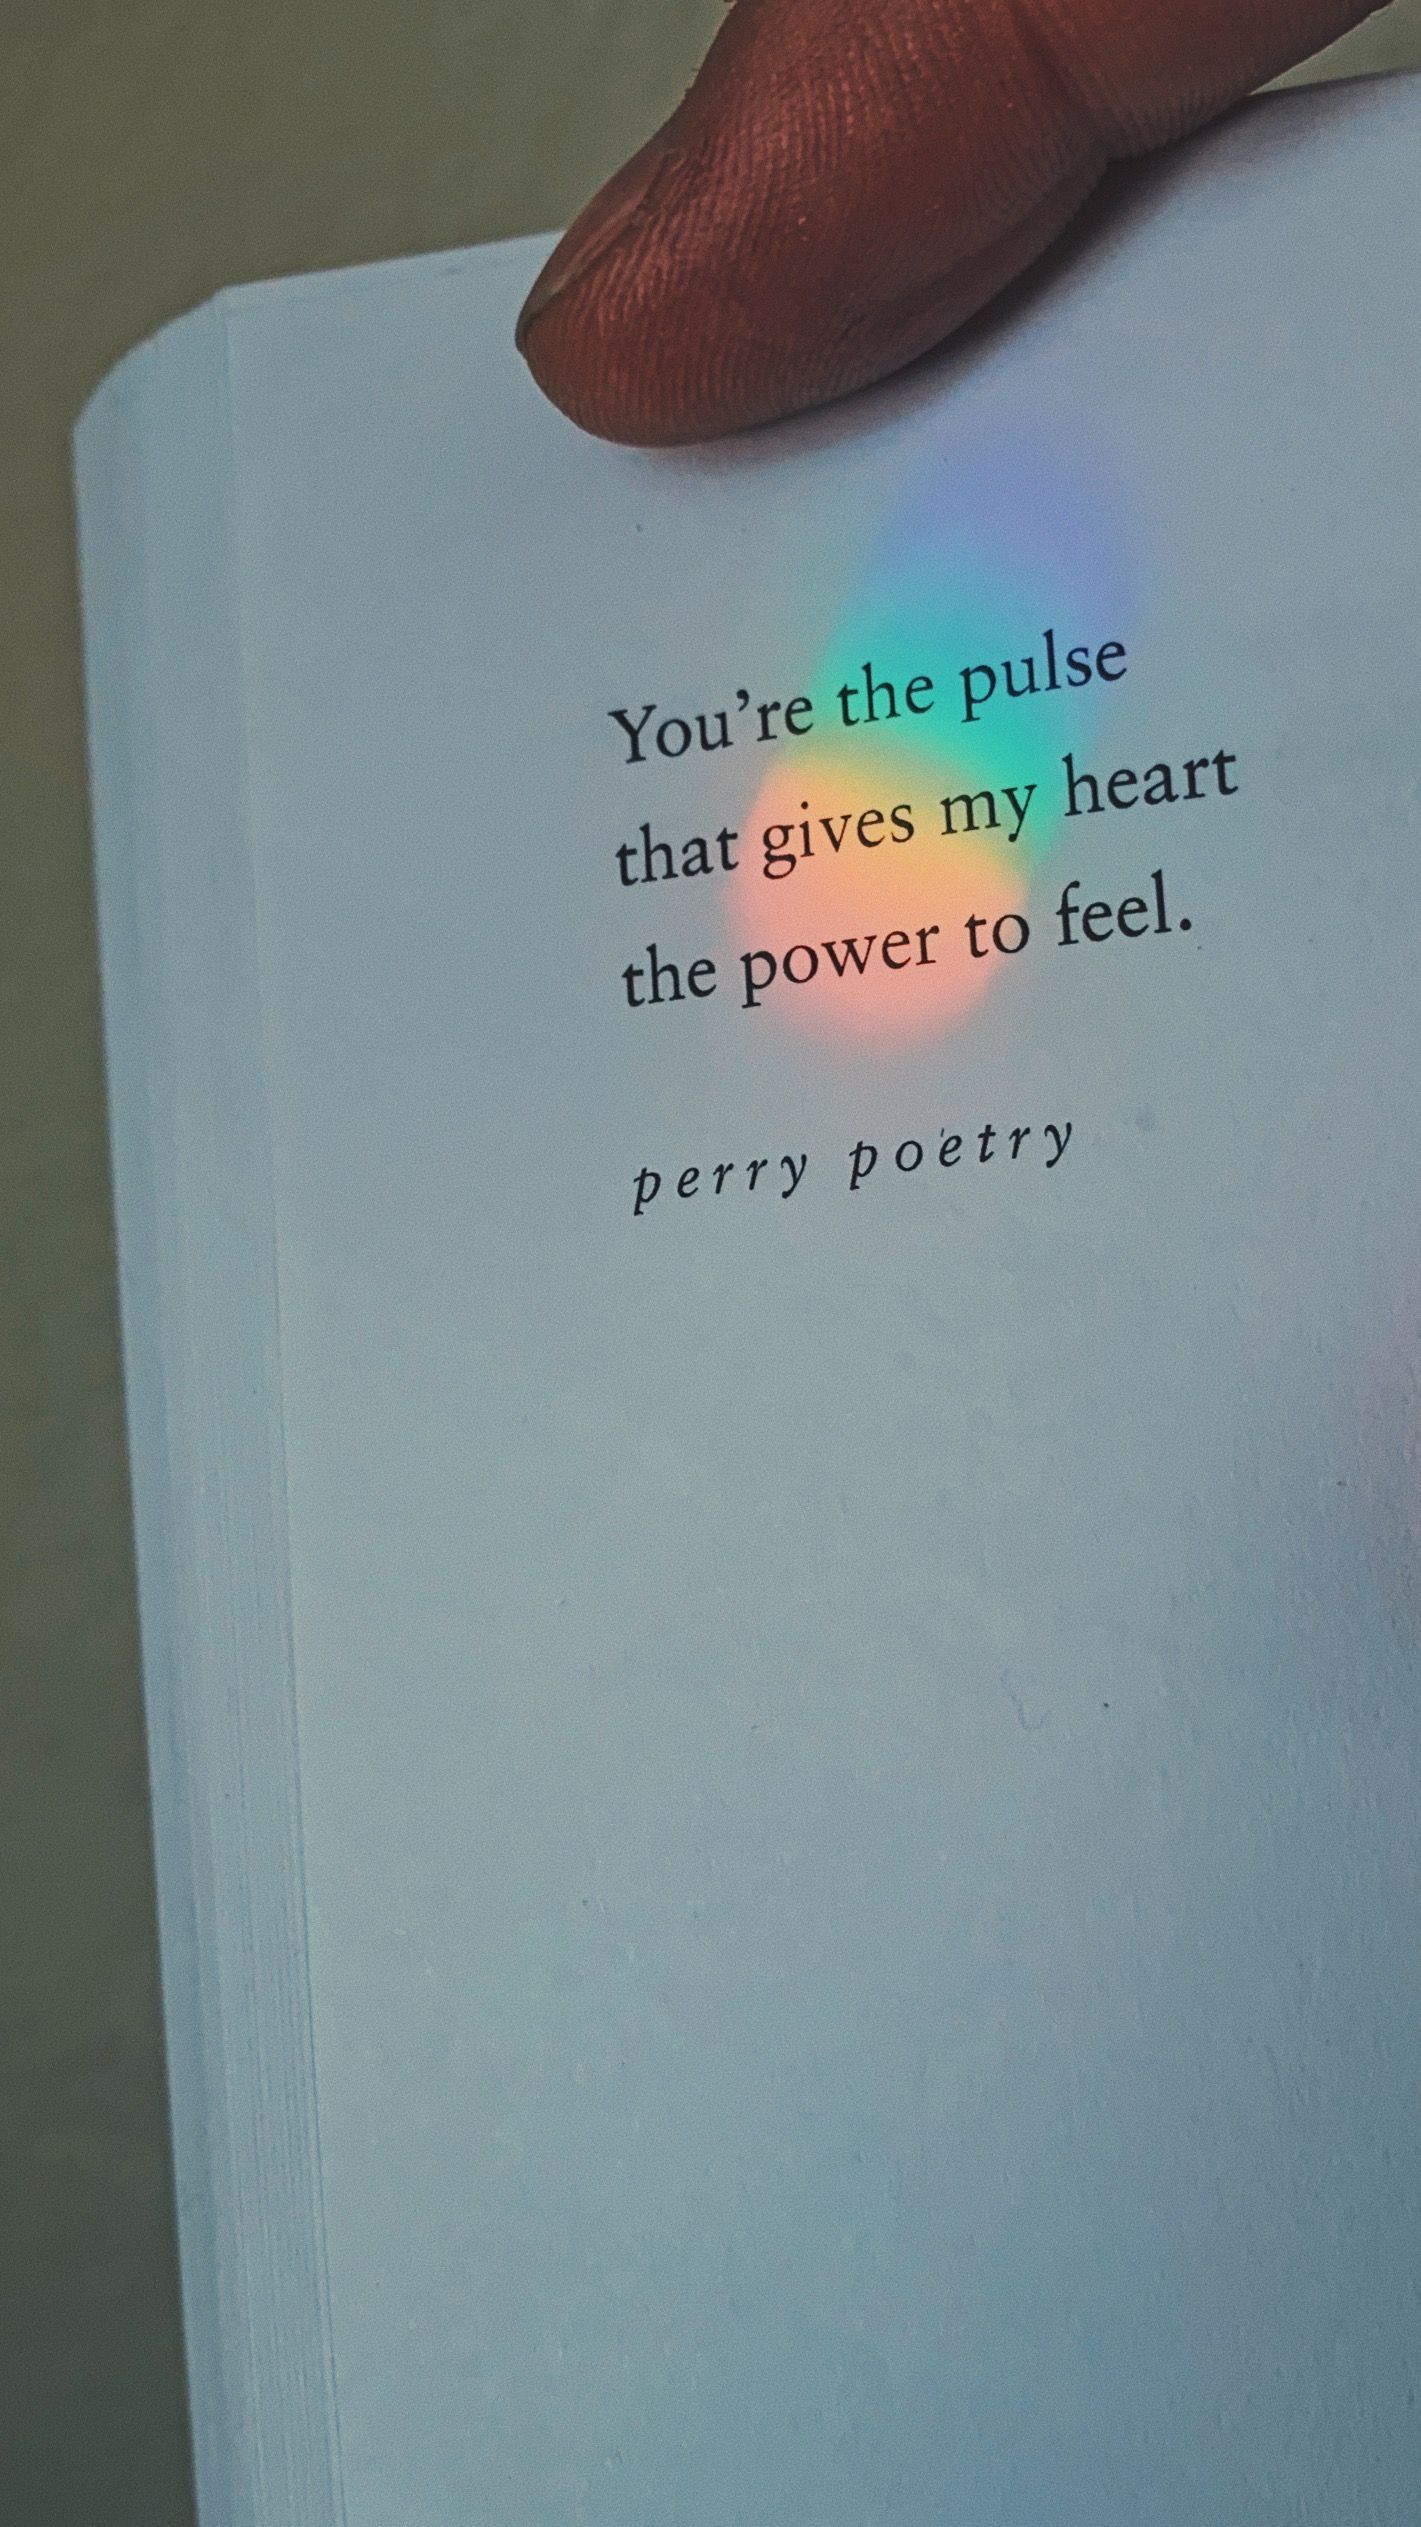 follow @perrypoetry on instagram for daily poetry. #poem #poetry #poems #quotes #love #perrypoetry #lovequotes #typewriter #writing #words #text #poet #writer Perry Poetry #quotesdeep